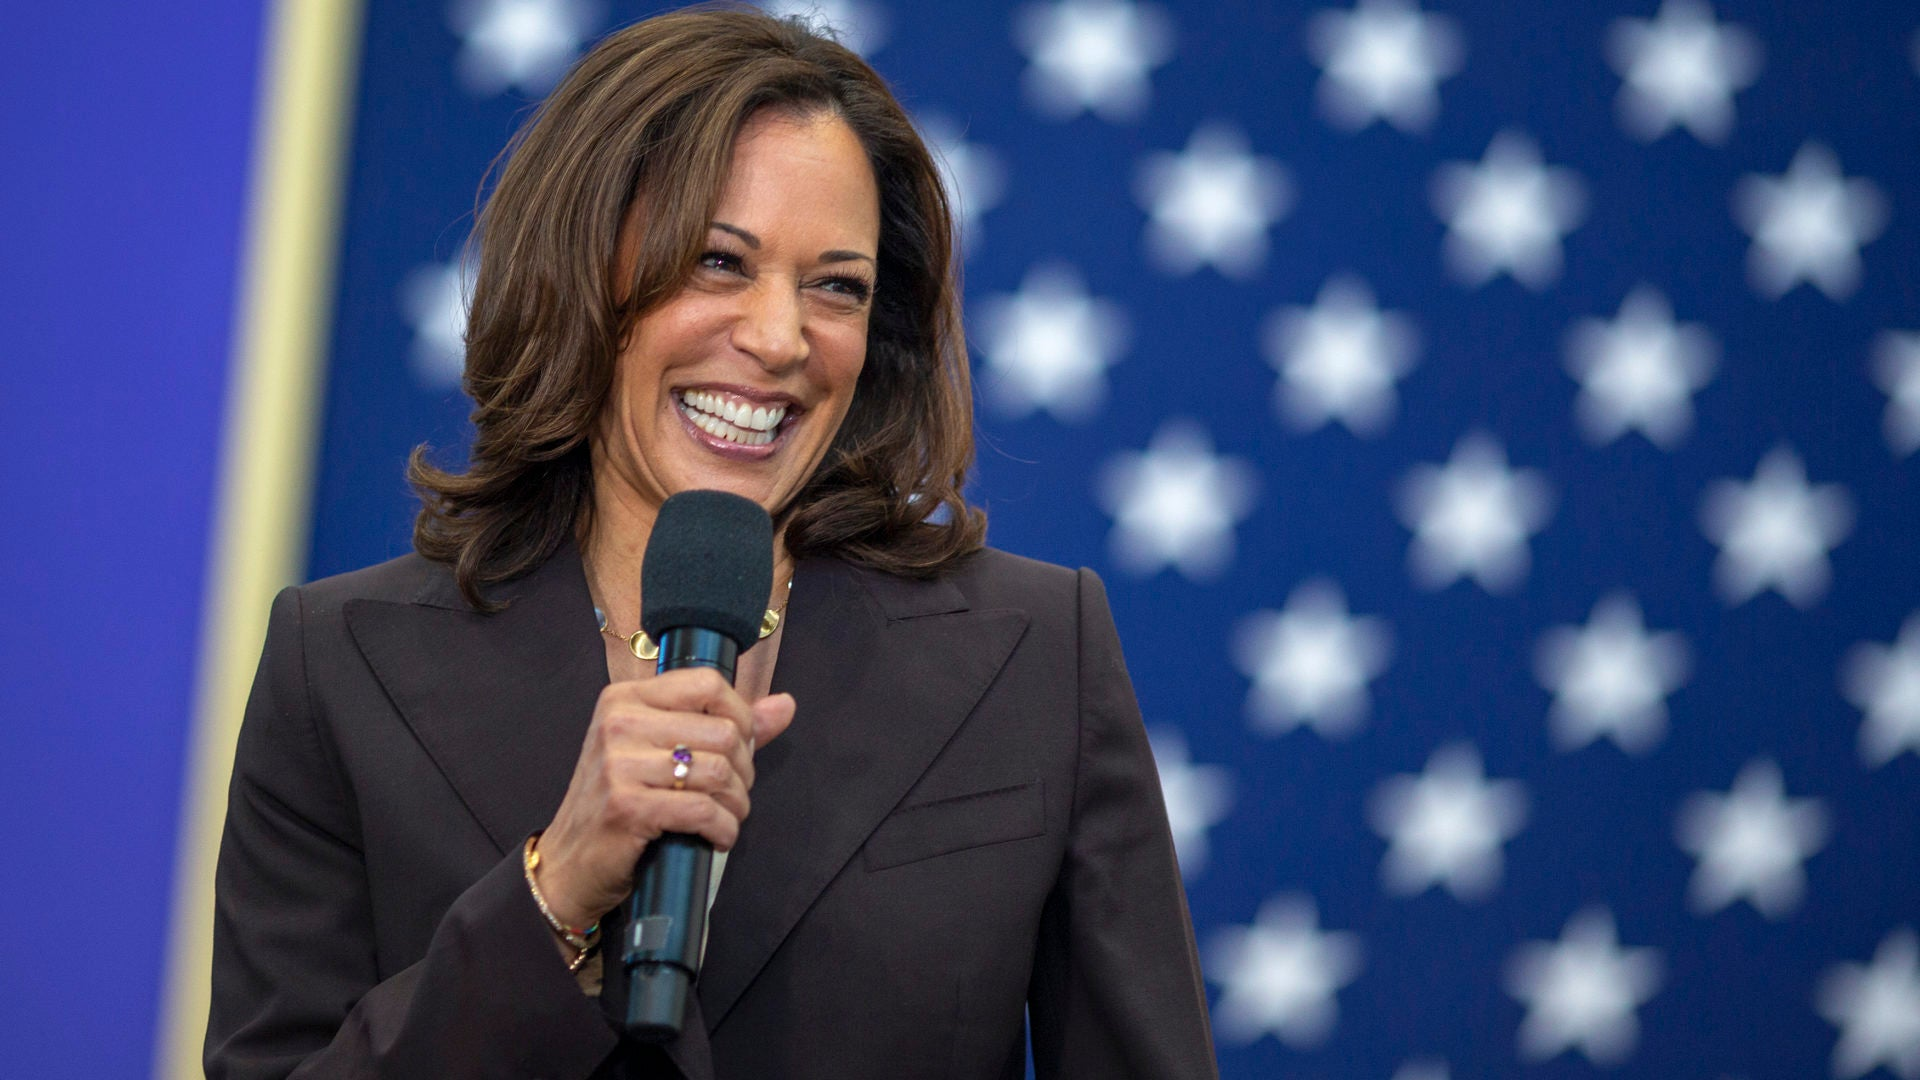 ABC To Air Rare Footage Of Desegregation Busing That Shaped Kamala Harris's Formative Years